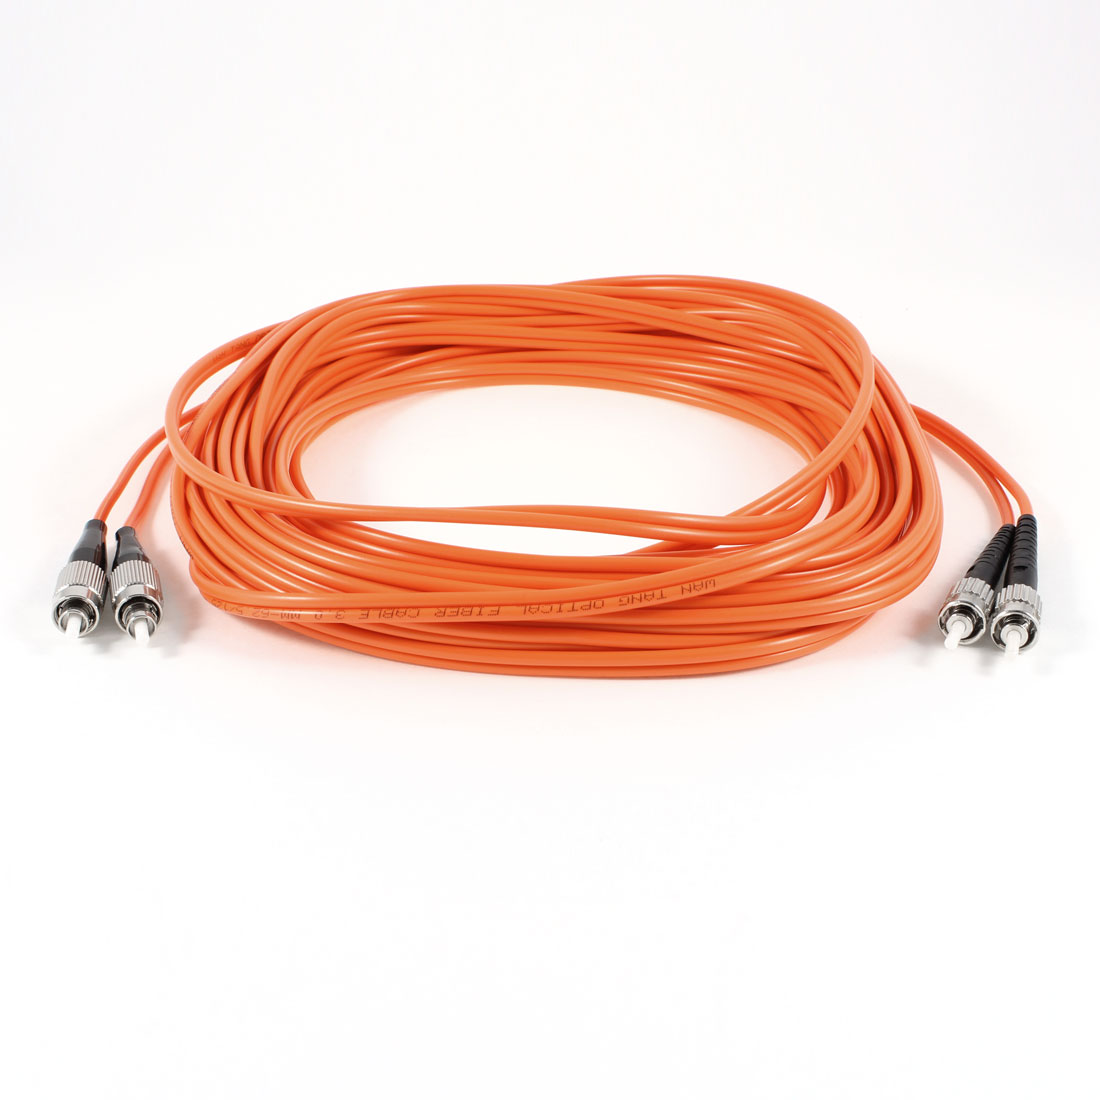 10M 33ft Fiber Optic Cable FC to ST Multi Model MM Duplex 62.5/125 3.0